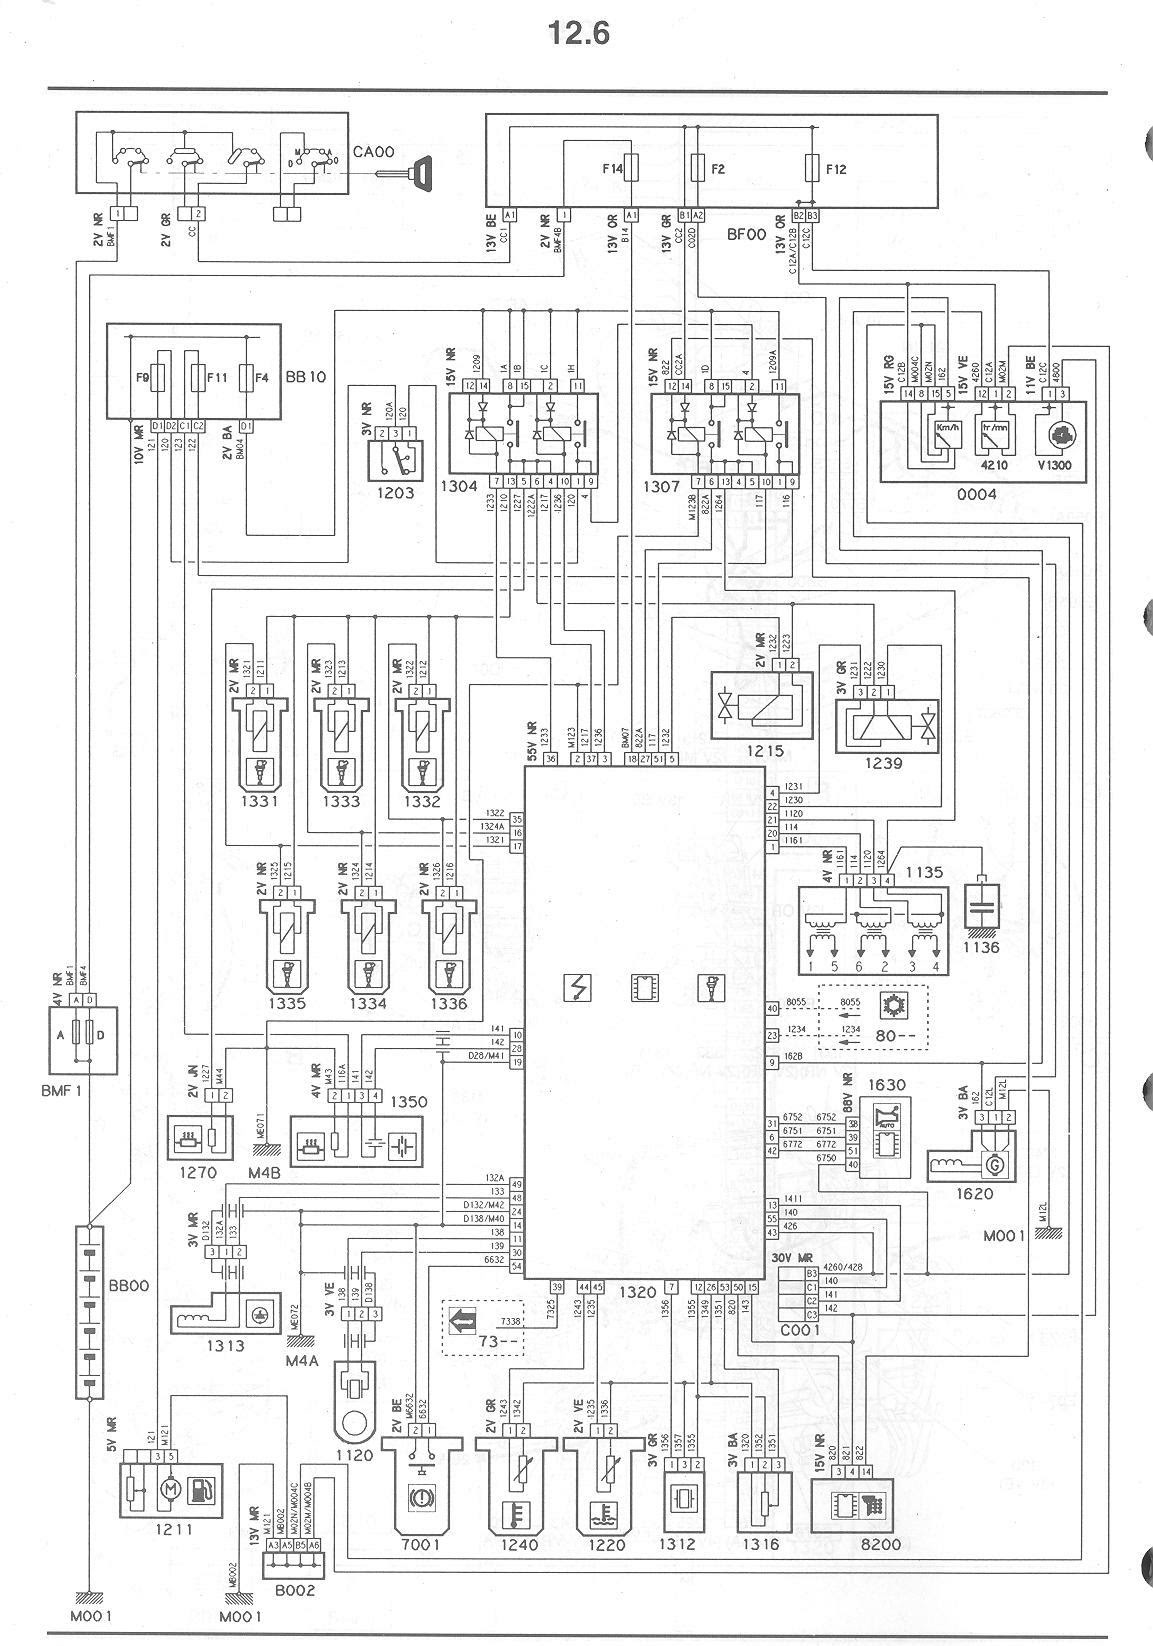 2003 Citroen Xsara Fuse Box Diagram